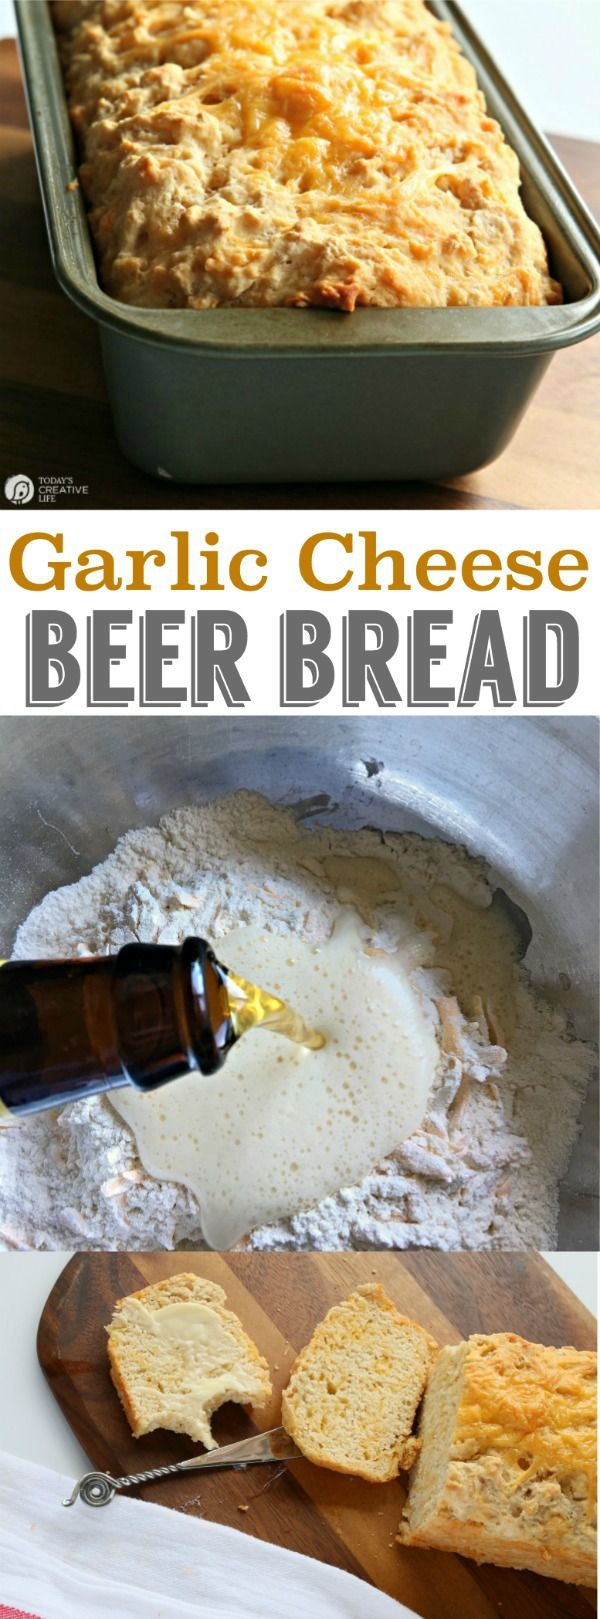 Beer Bread Recipe with Garlic and Cheese | This Garlic cheese beer bread is delicious! This easy recipe is great with salads, or alone. Make it with craft microbrew or regular beer. Click on the photo for the recipe. TodaysCreativeLife.com